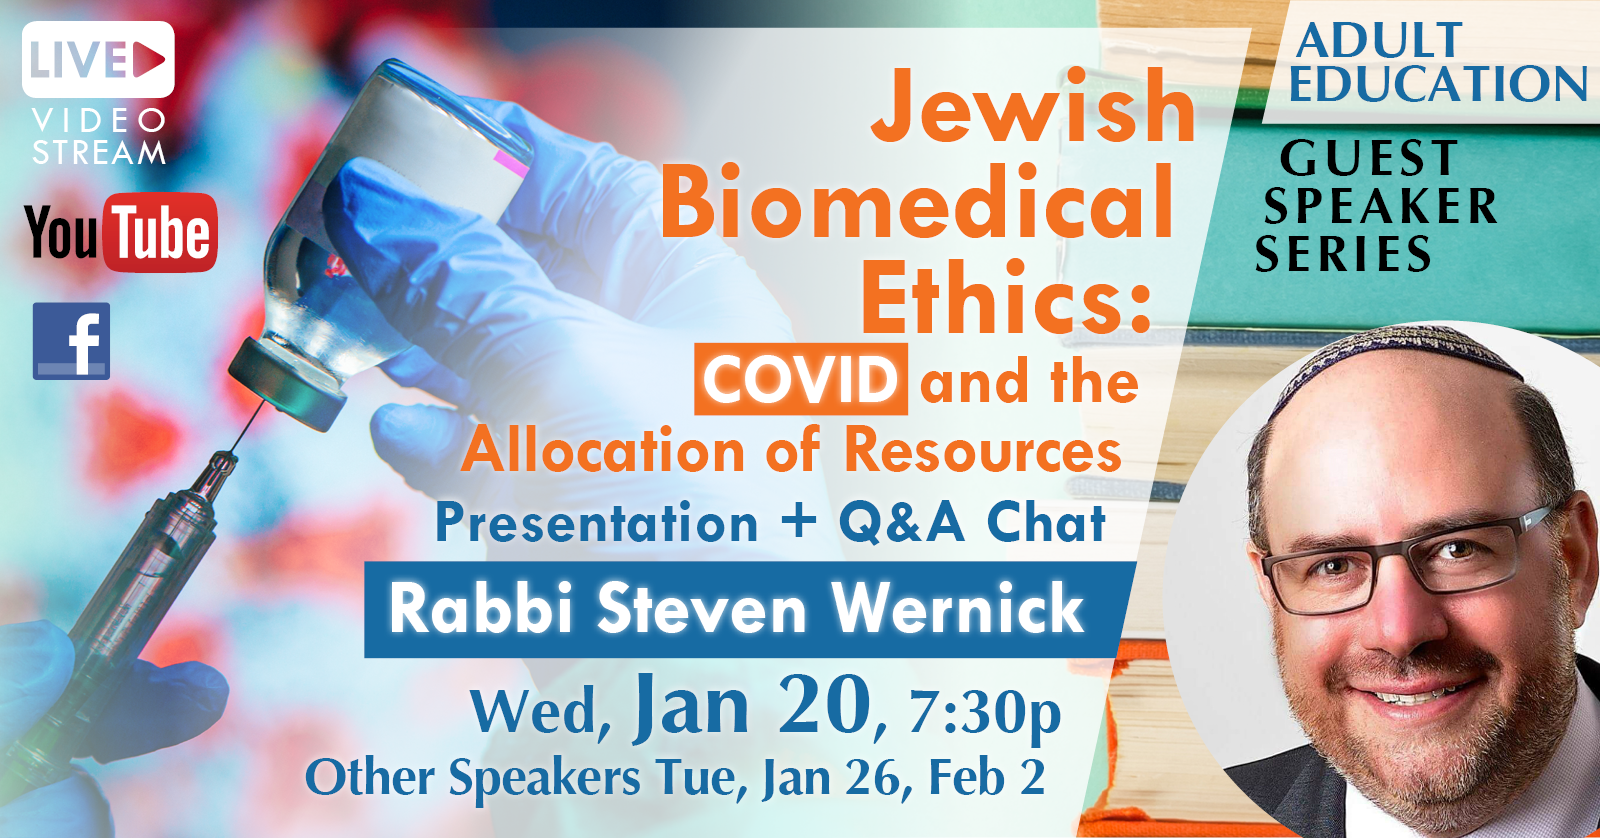 Banner Image for Jewish Biomedical Ethics: COVID and the Allocation of Resources With Rabbi Steven Wernick